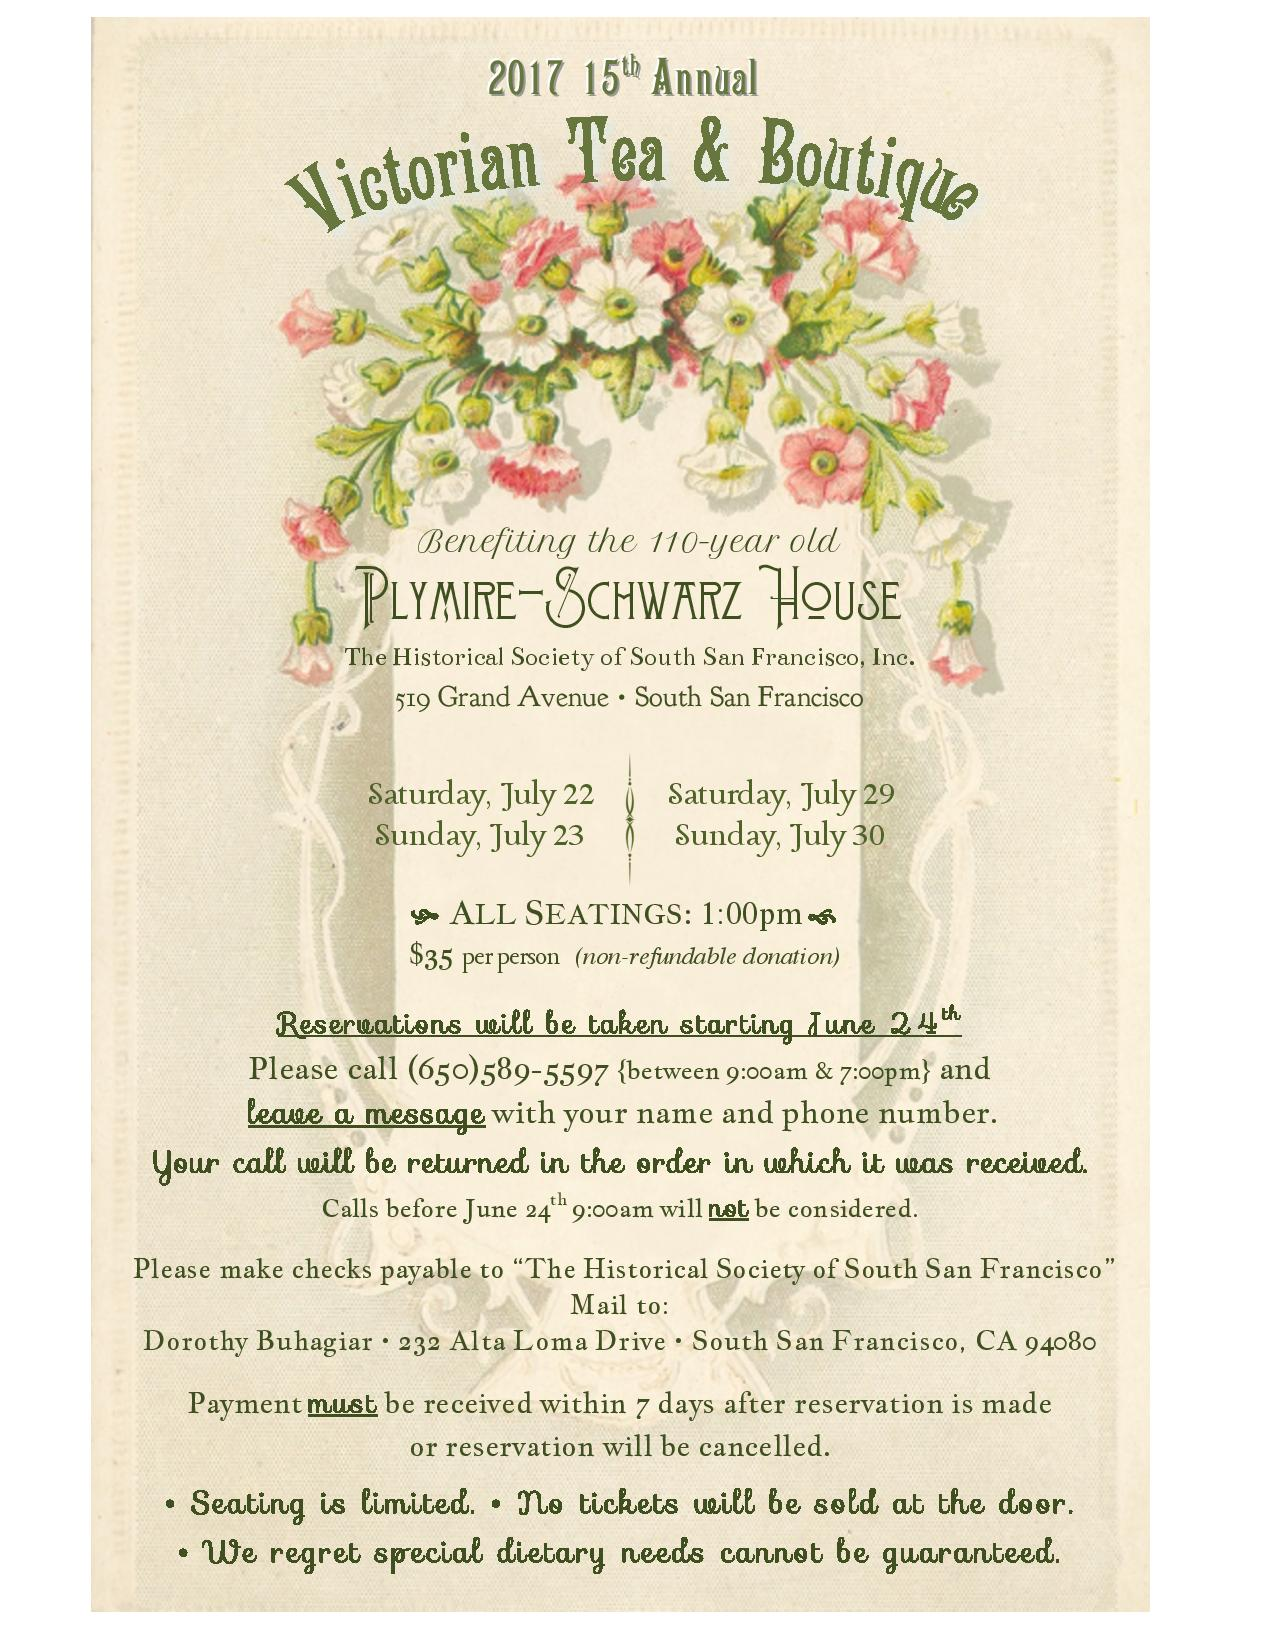 Historical Society of South San Francisco 15th Annual Victorian Tea and Boutique Set for July 22, 23, 29, 30